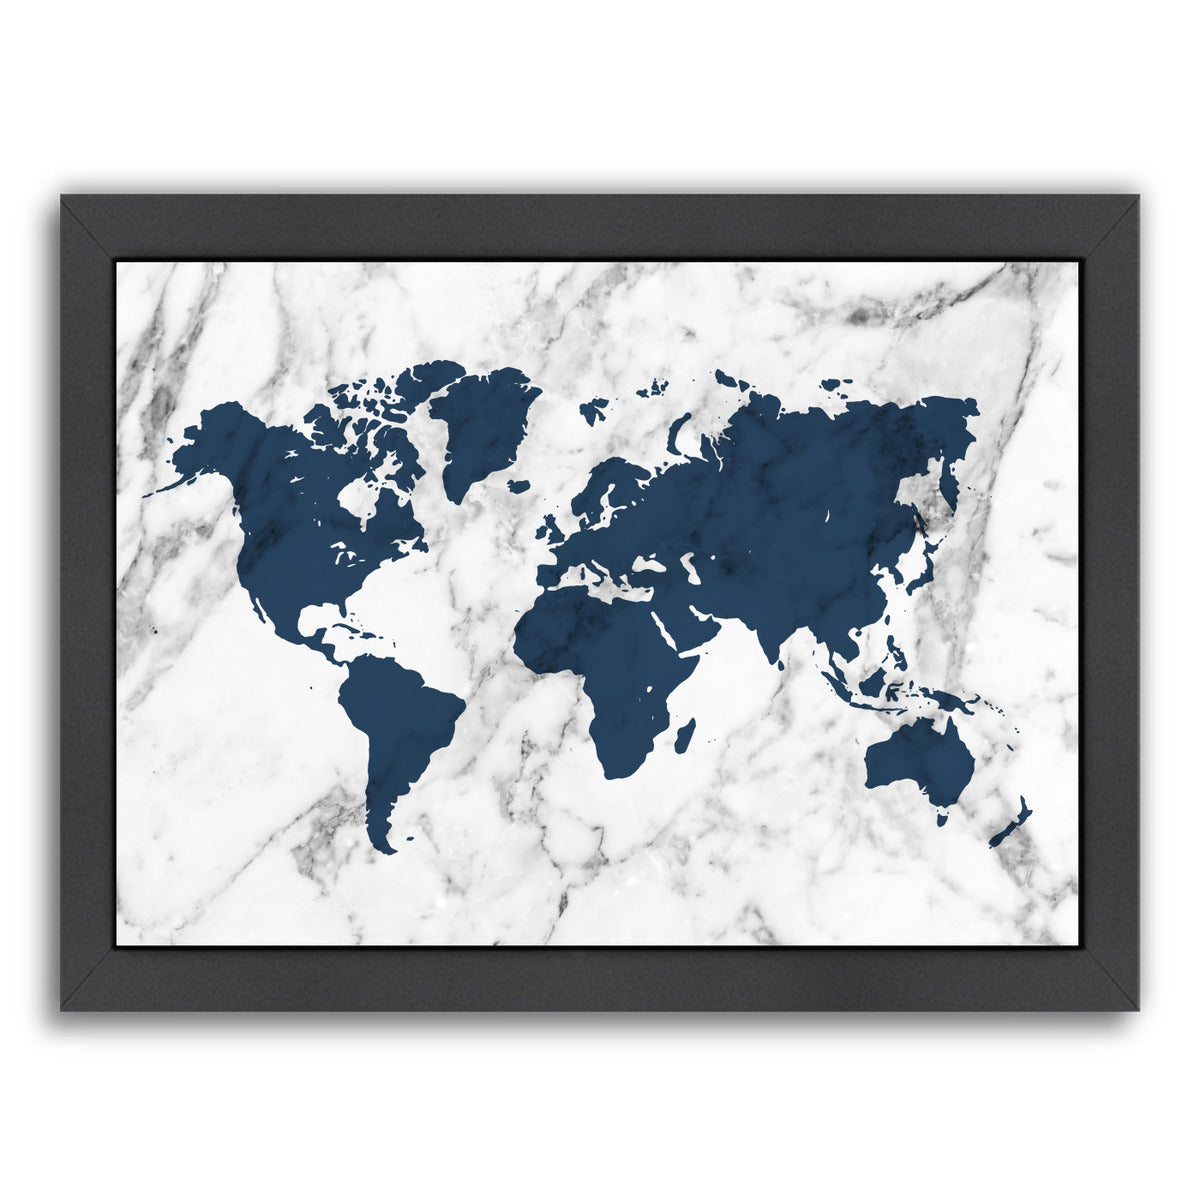 Marble World Map (Navy) by Samantha Ranlet Framed Print - Americanflat